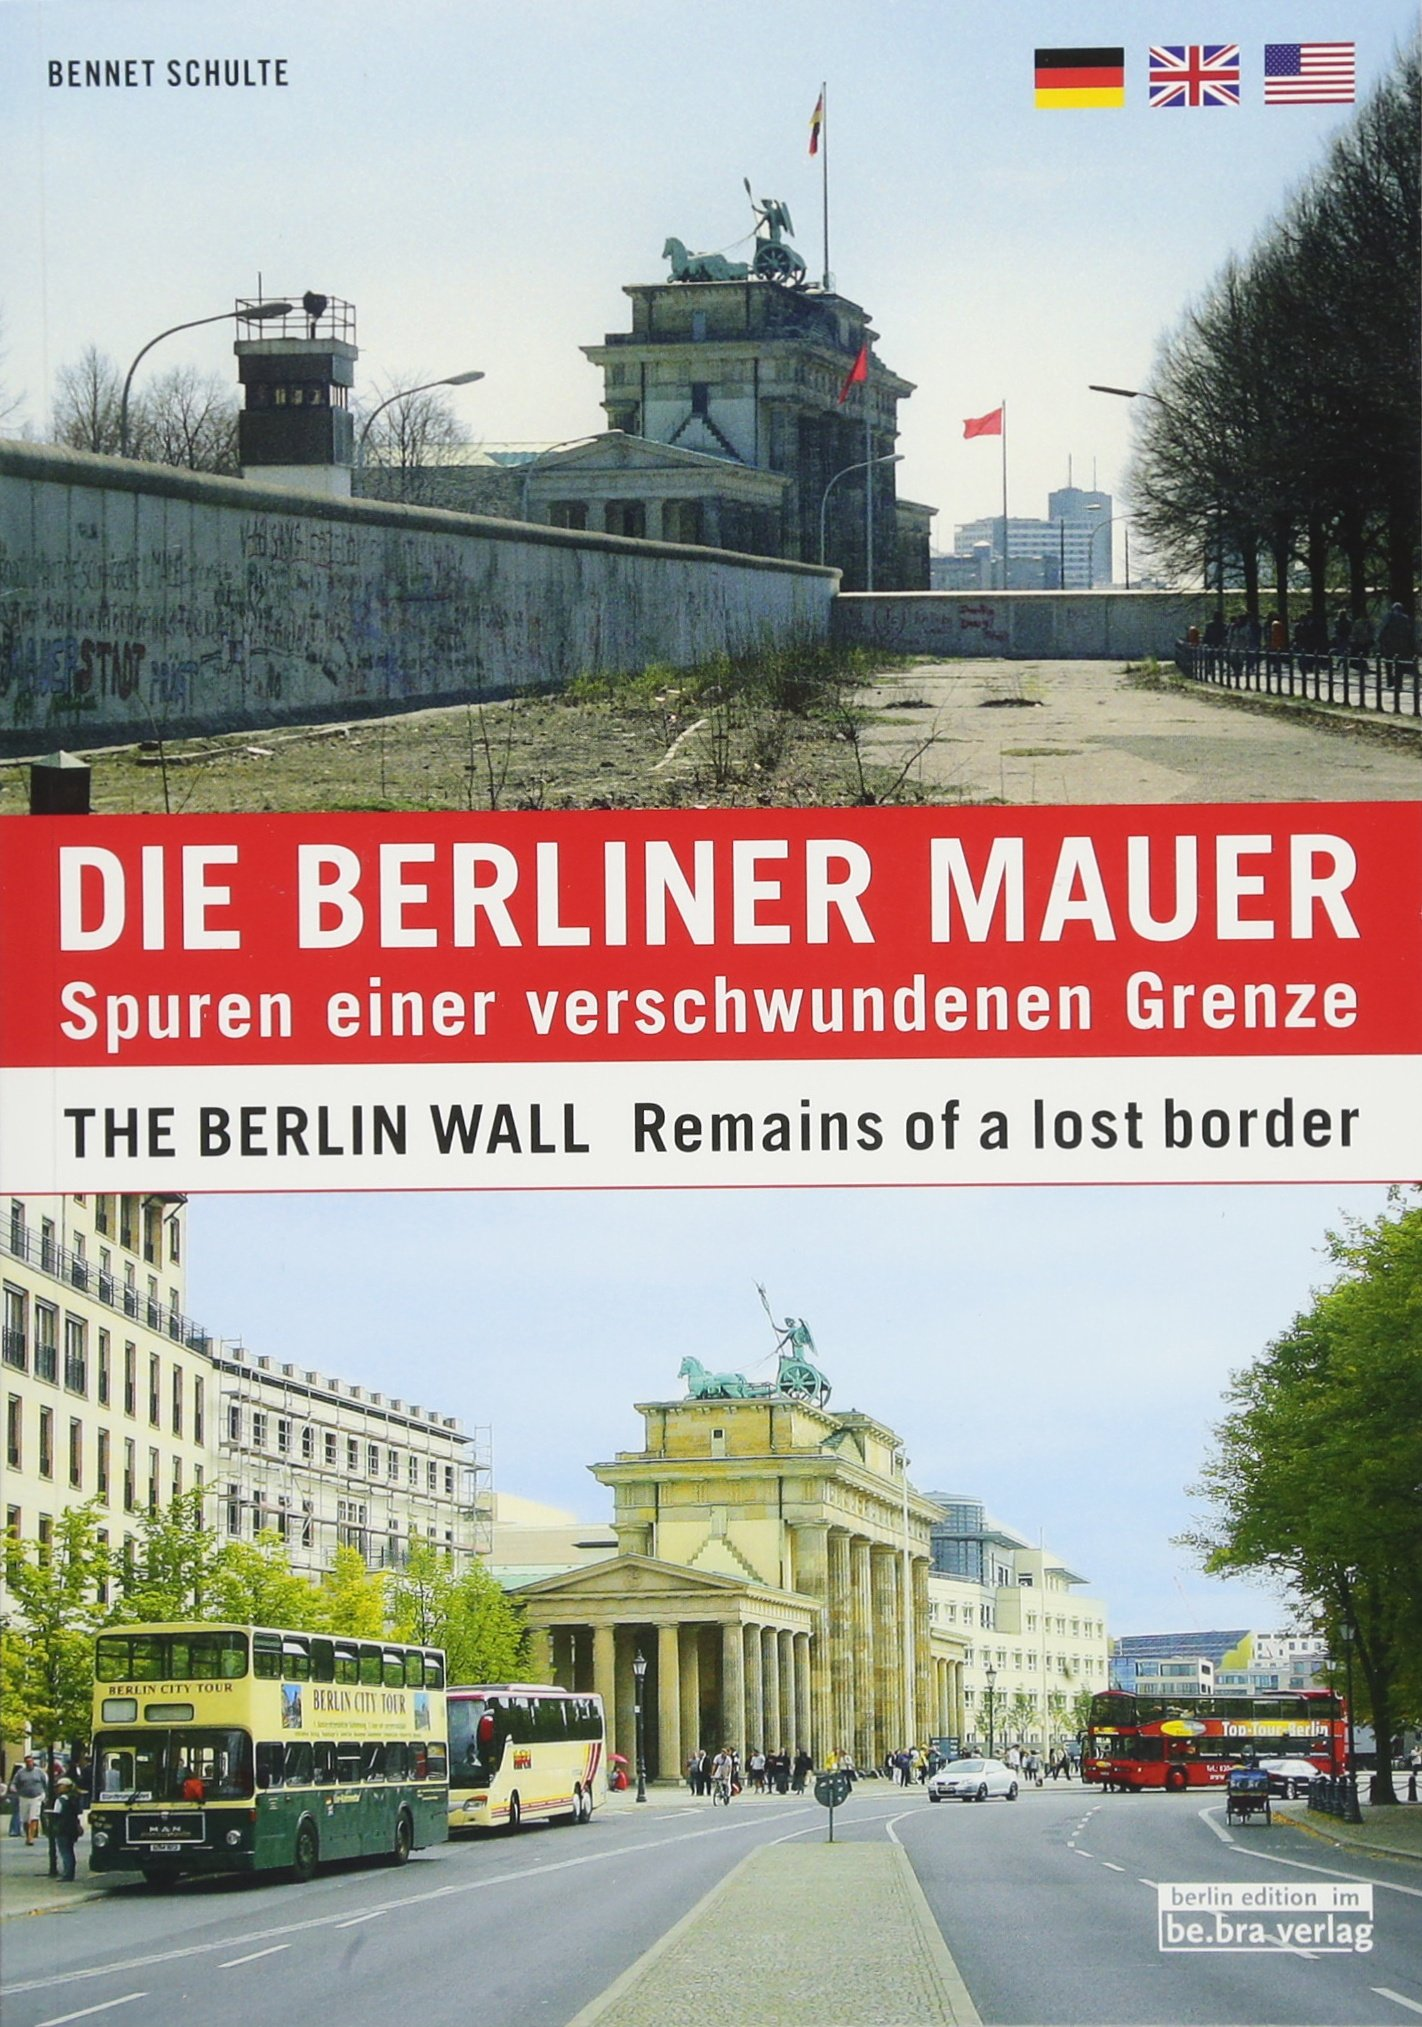 die-berliner-mauer-spuren-einer-verschwundenen-grenze-the-berlin-wall-remains-of-a-lost-border